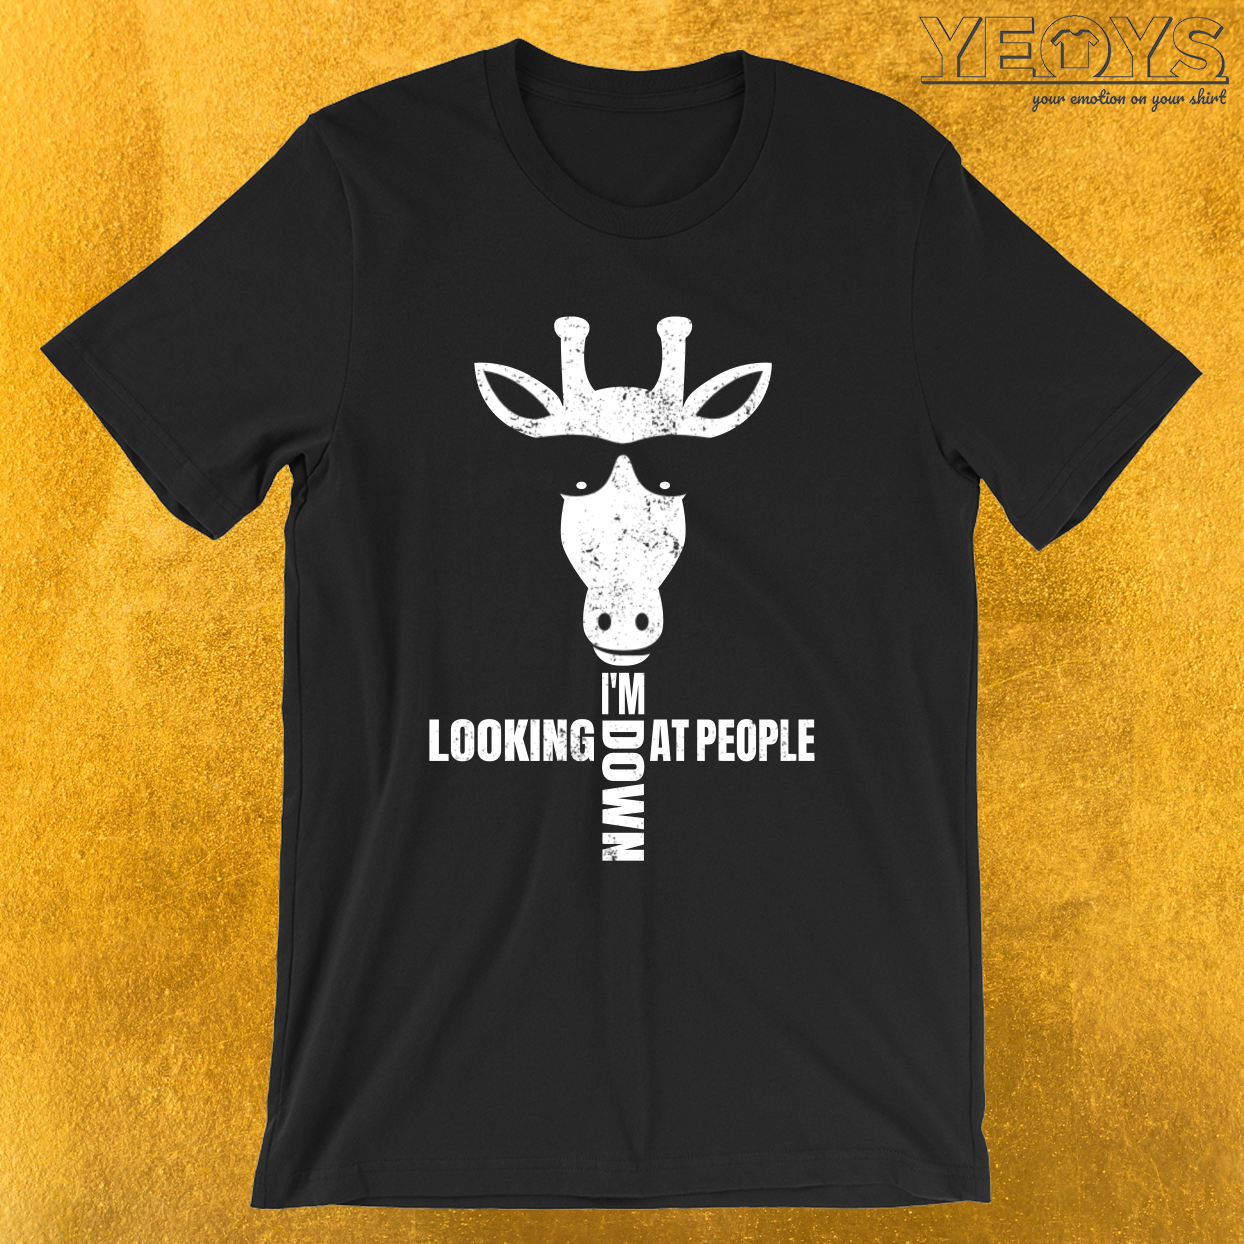 I'm Looking Down At People – Giraffe Pun Tee